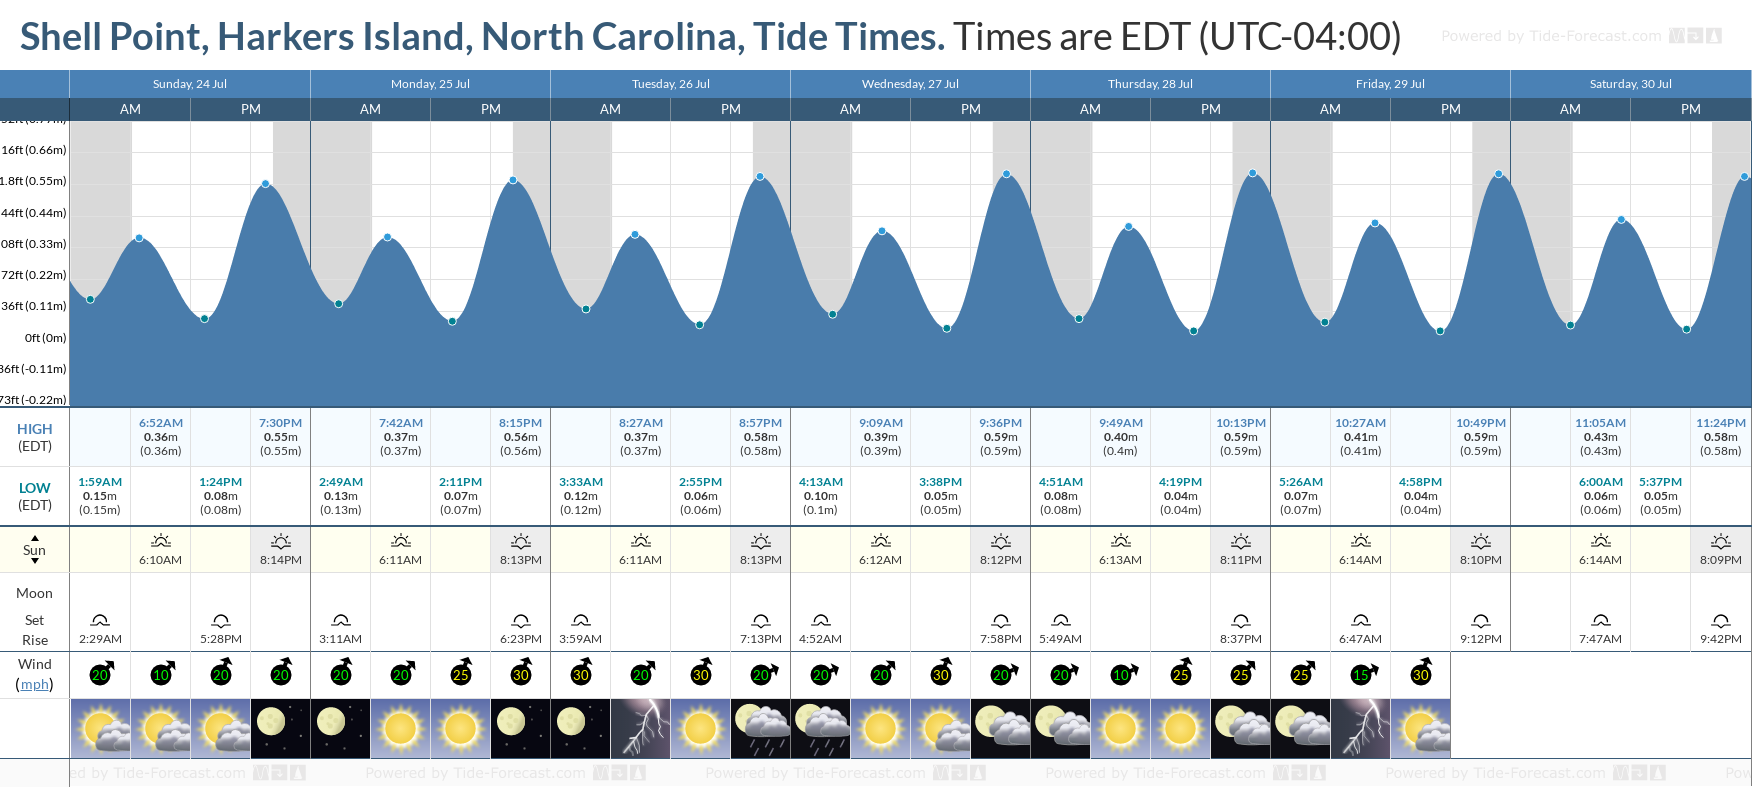 Shell Point, Harkers Island, North Carolina Tide Chart including high and low tide tide times for the next 7 days